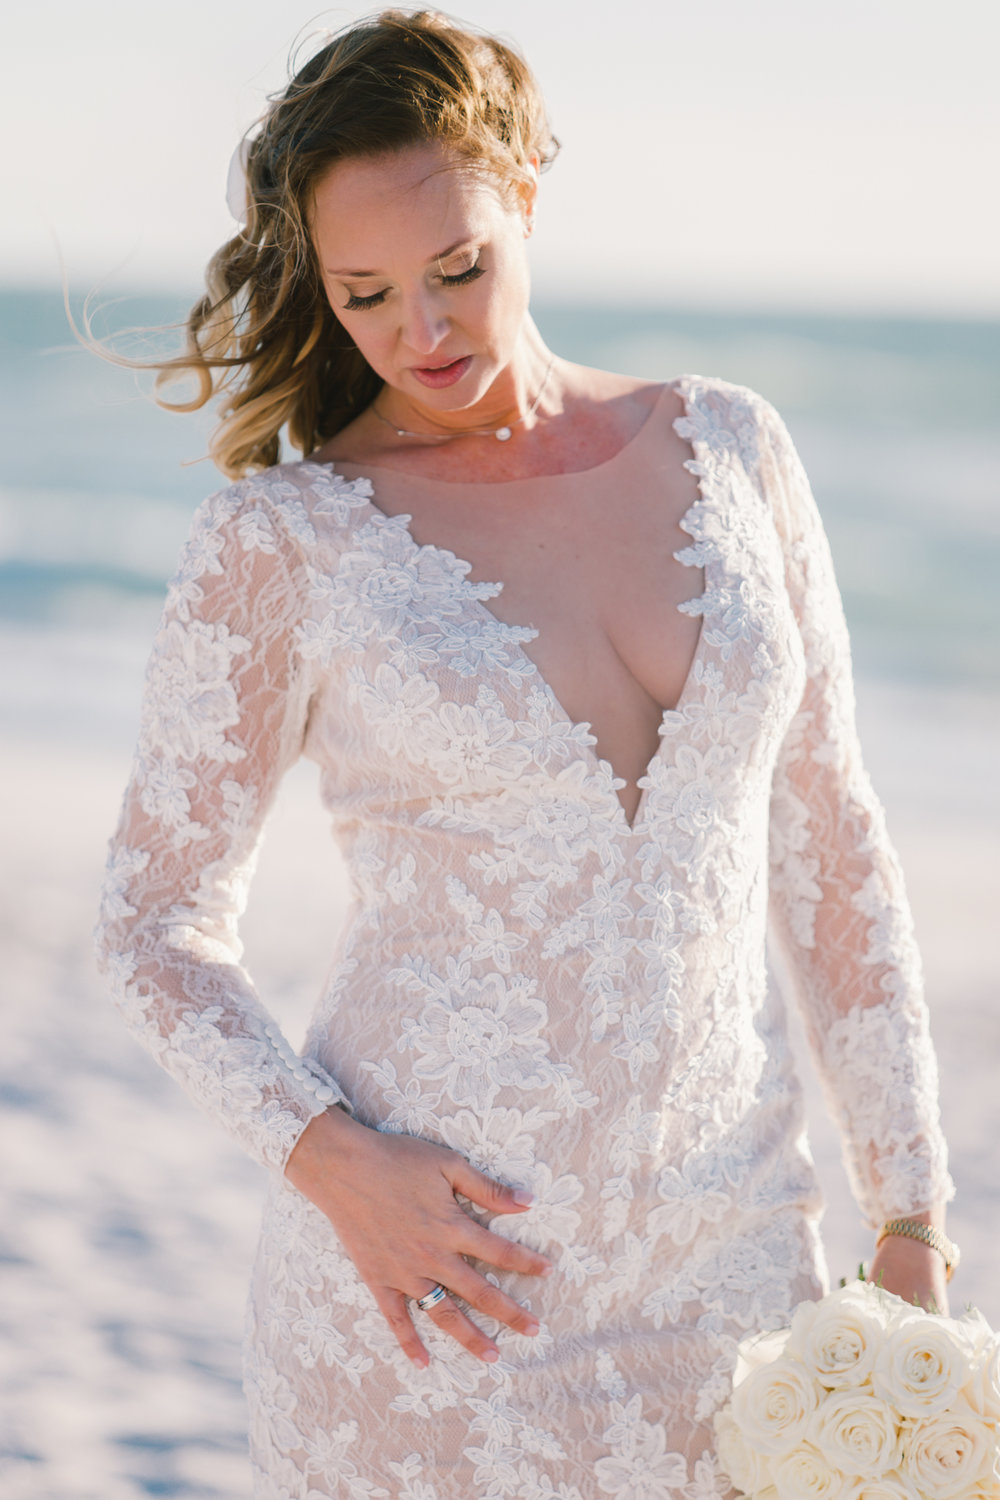 Bradenton-beach-wedding-photographer, bride-photo